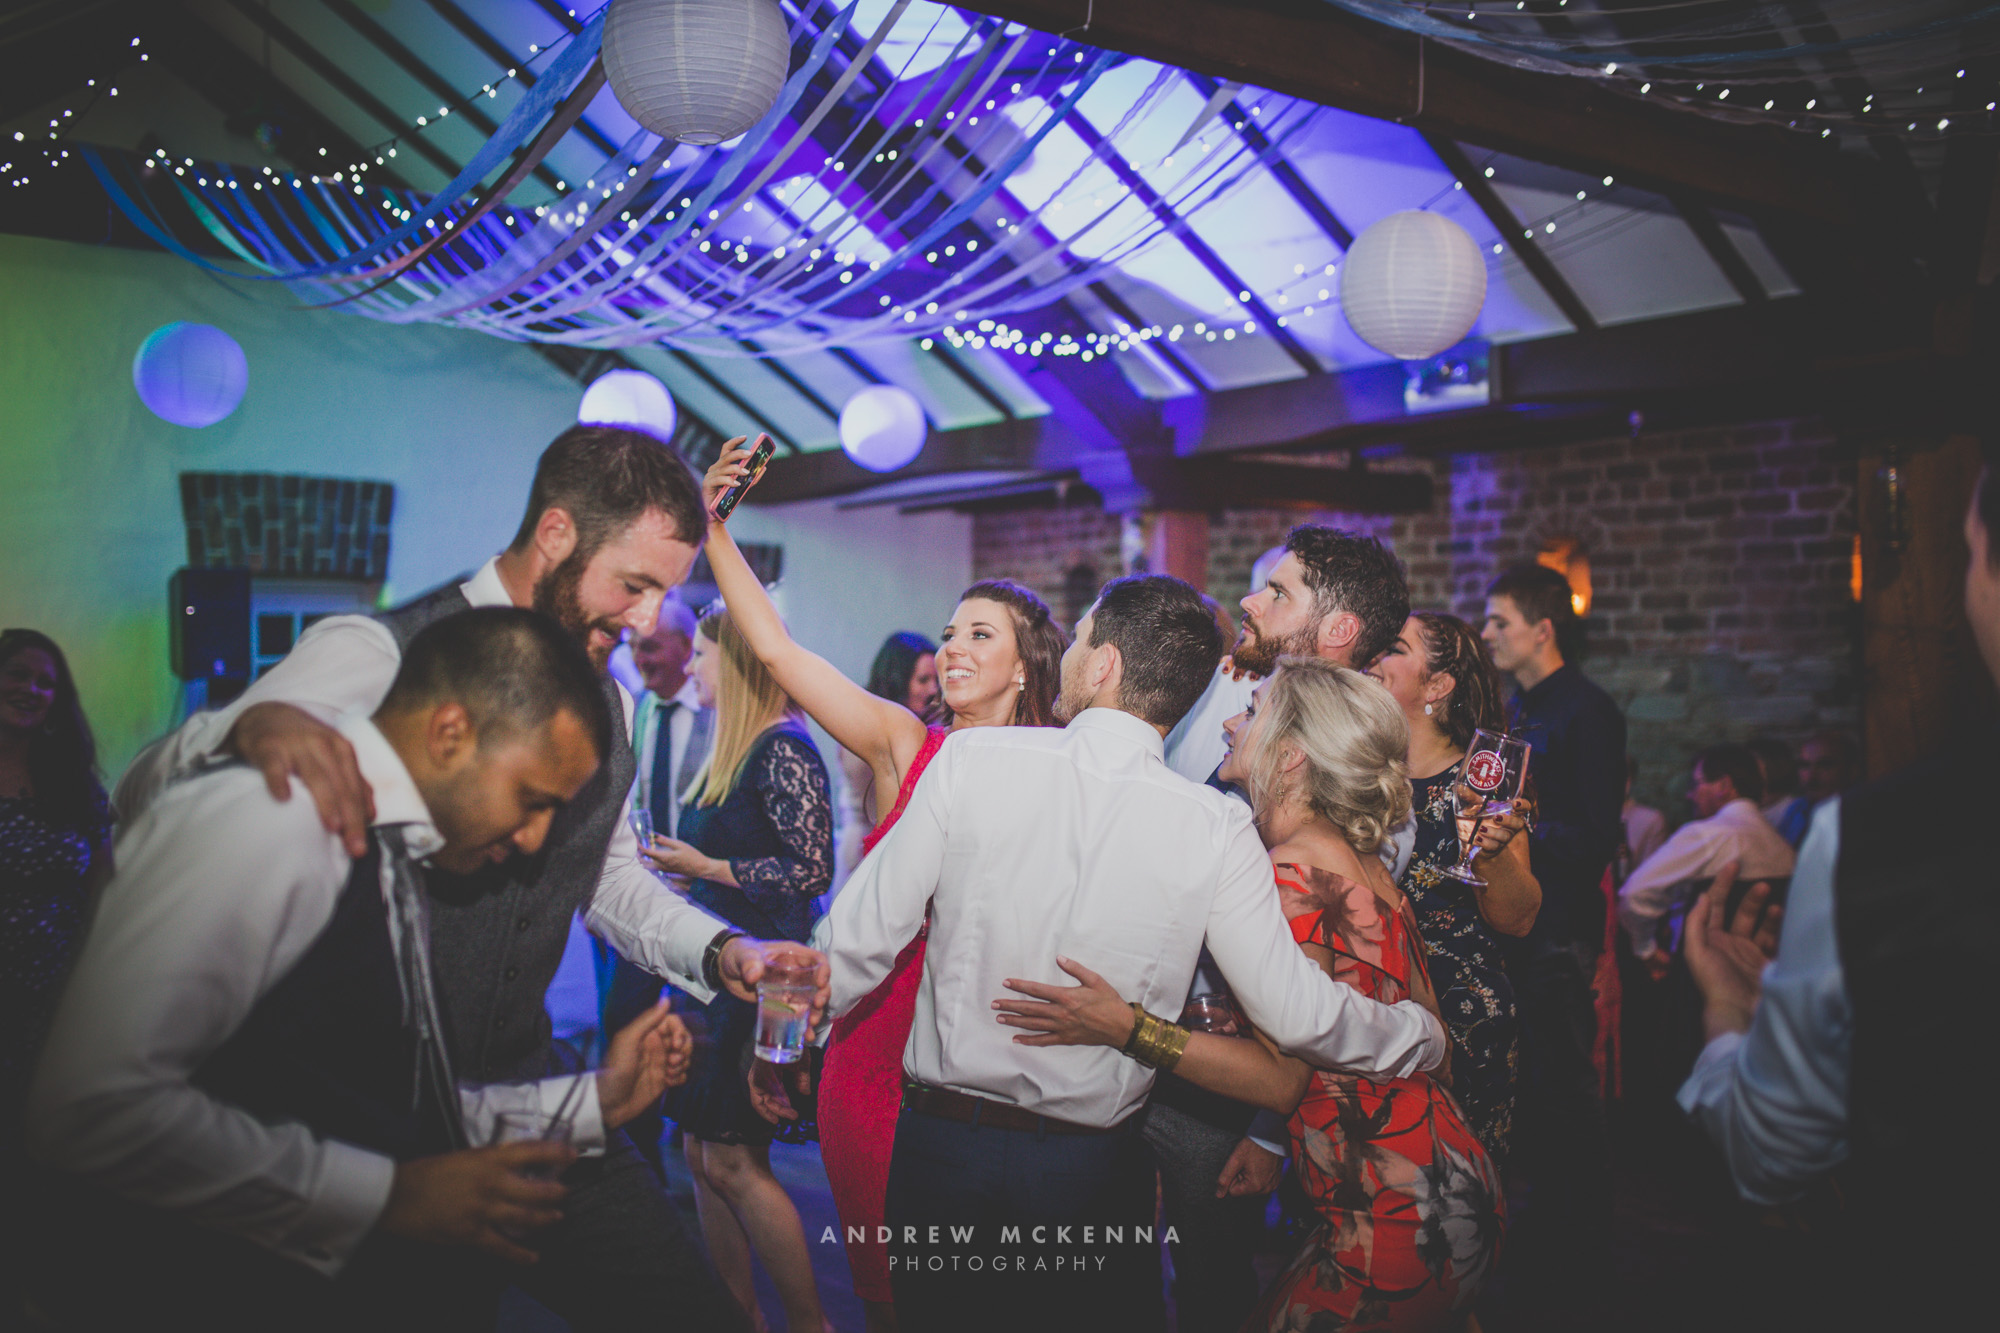 The Mill At Ballyduggan Wedding Photography Photographer Andrew McKenna Photography Newcastle County Down, Northern Ireland.